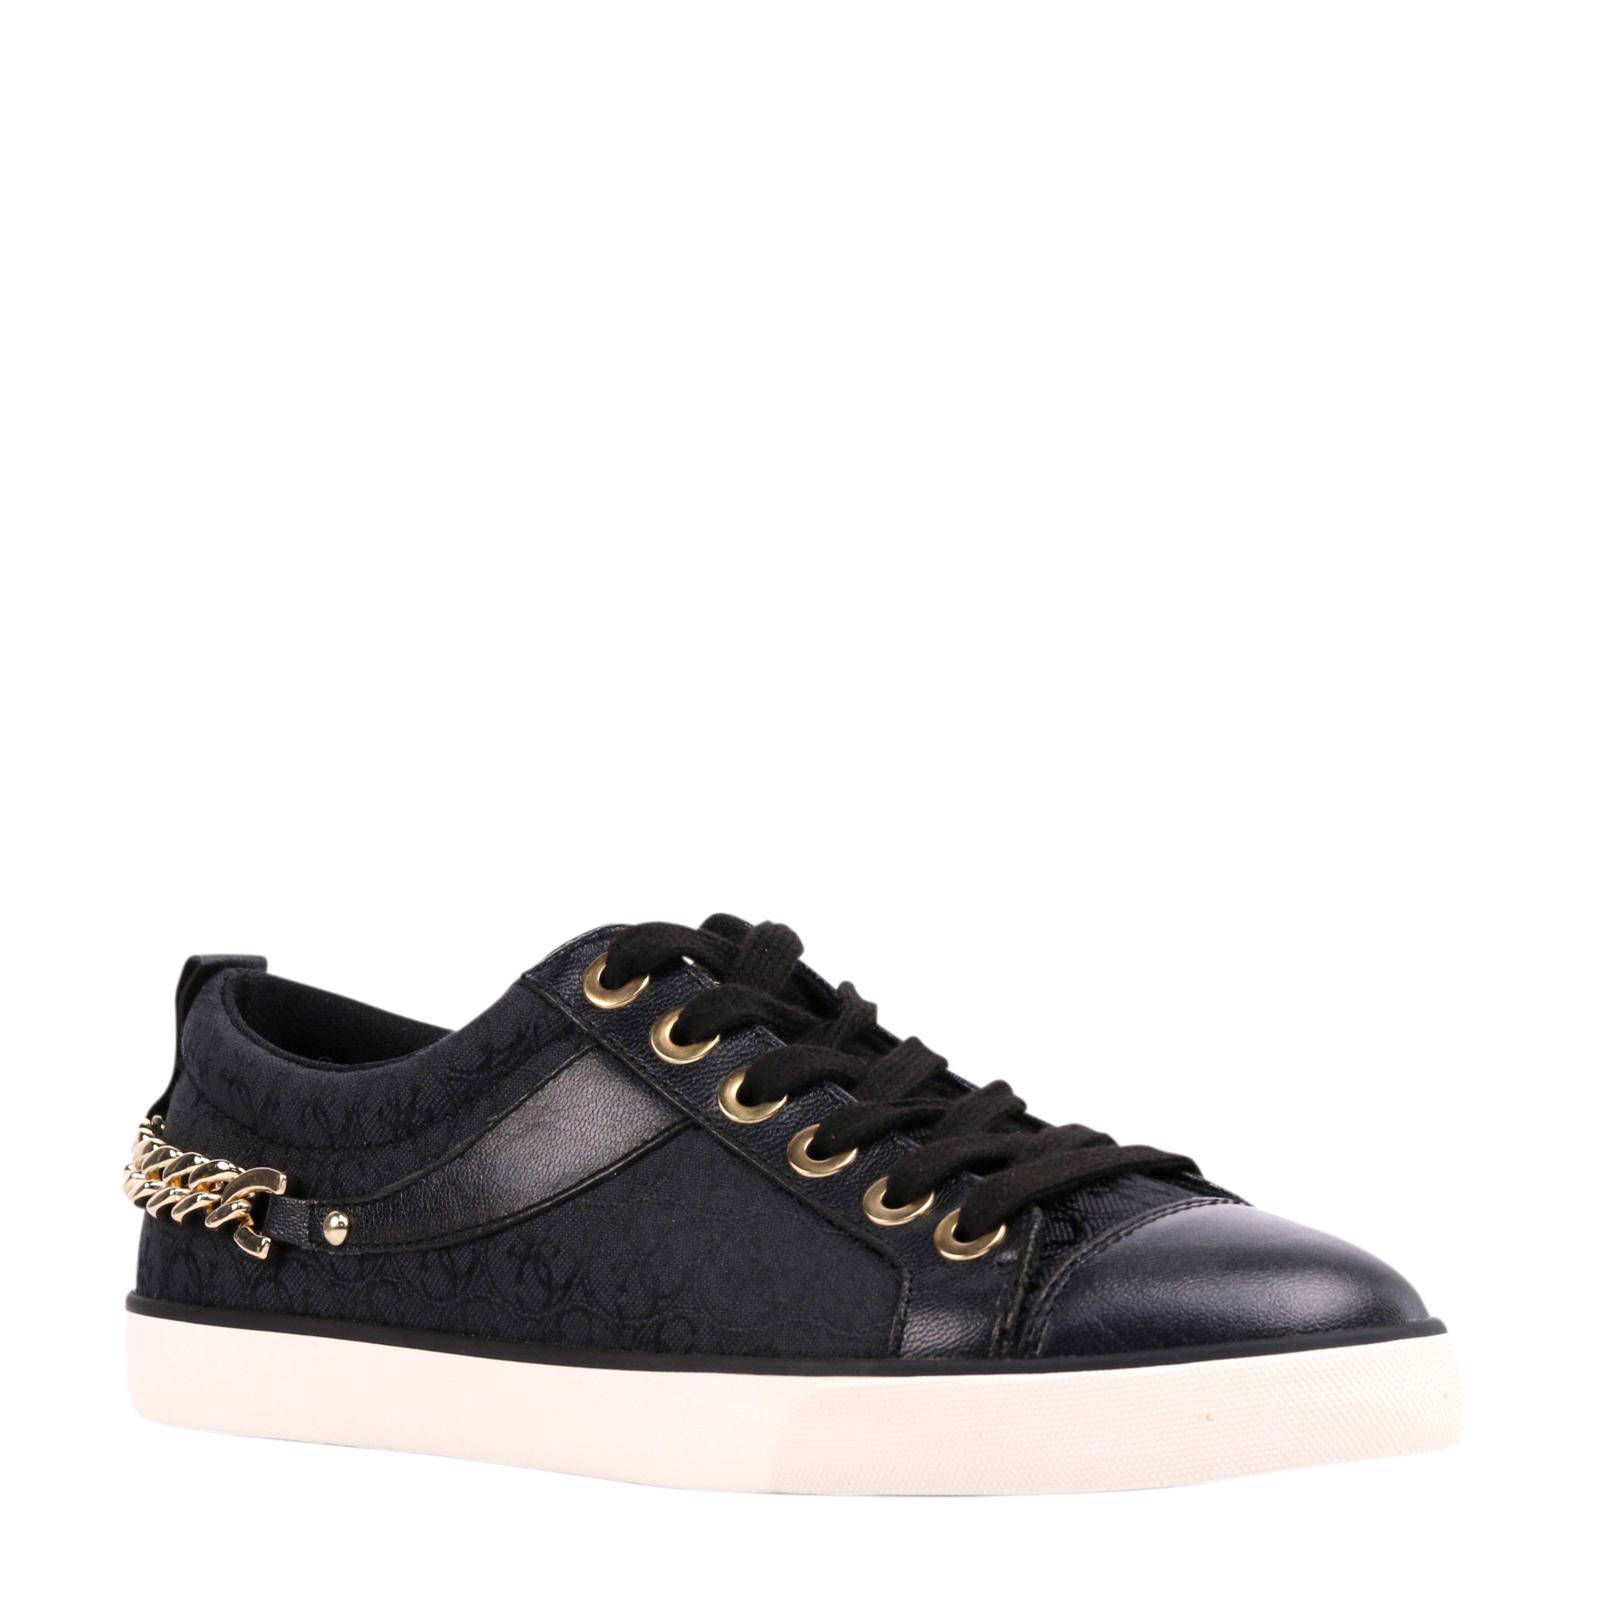 New Deals on GUESS Sneakers